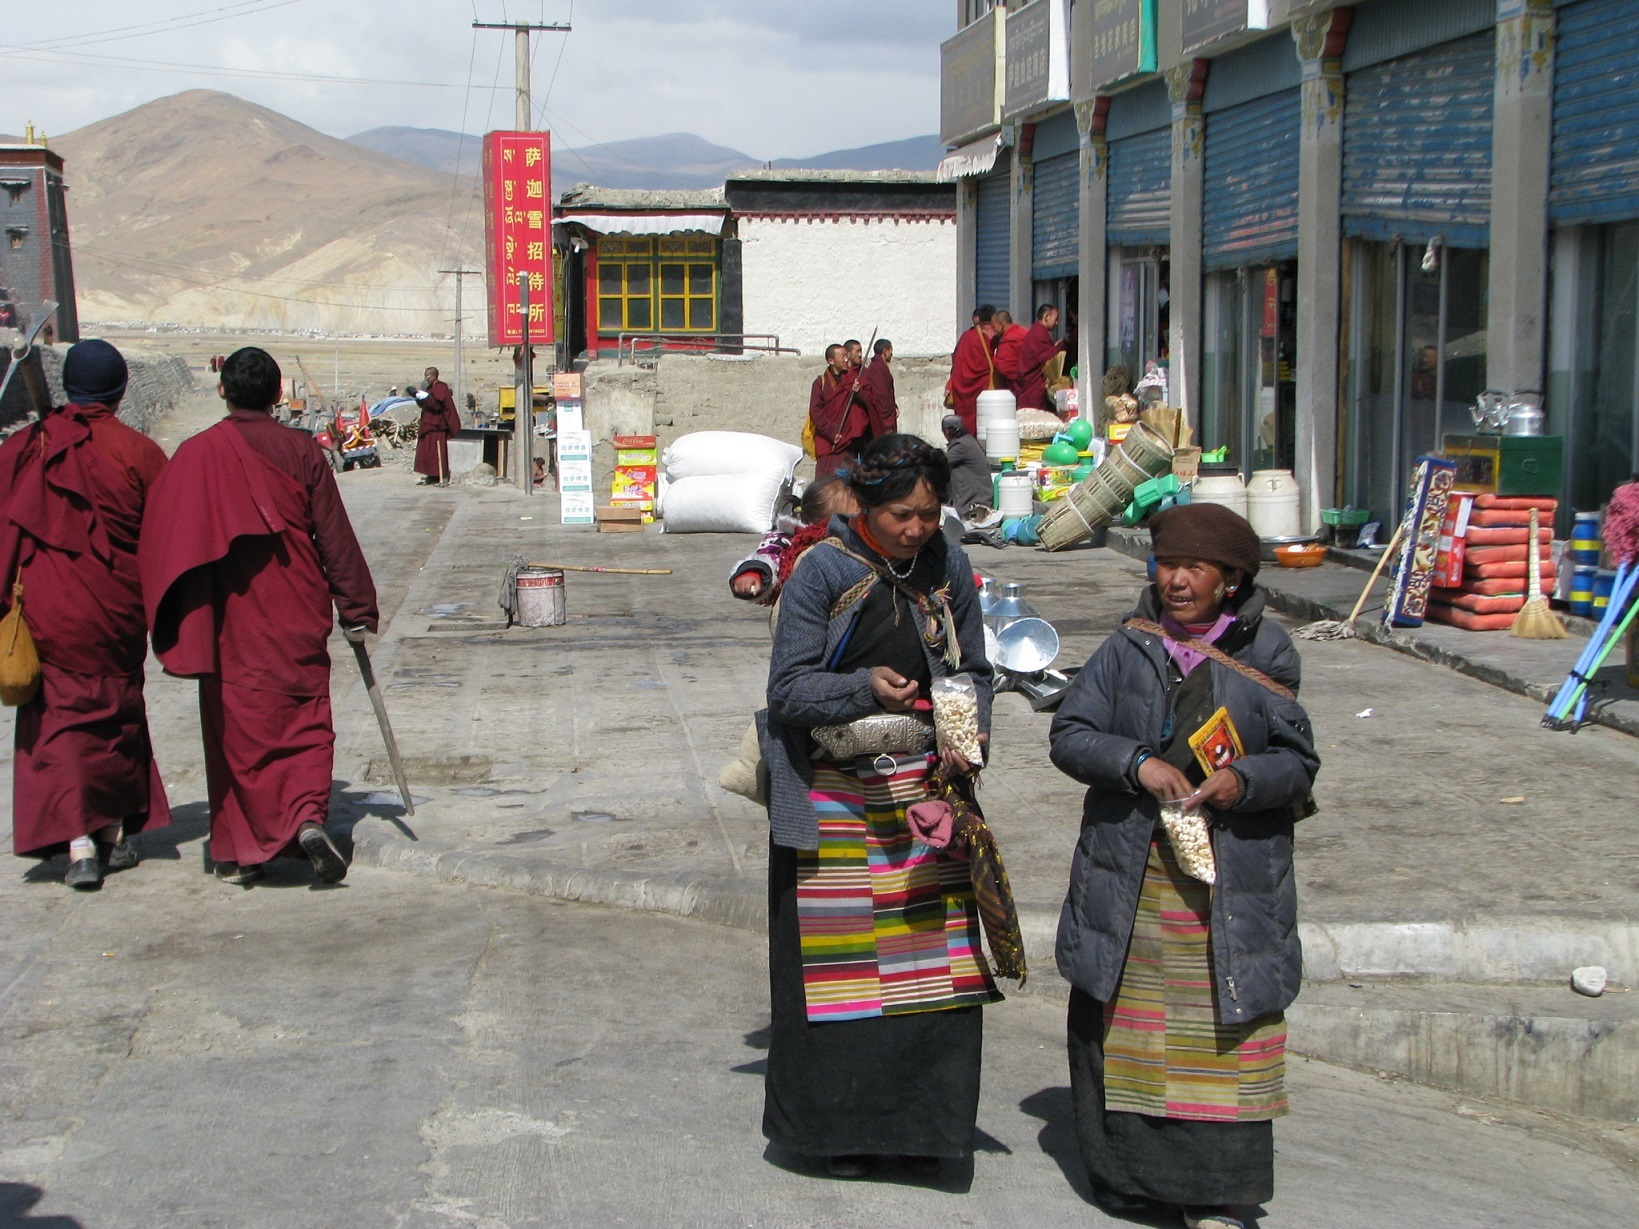 tibet-med-swed-asia-travels--133